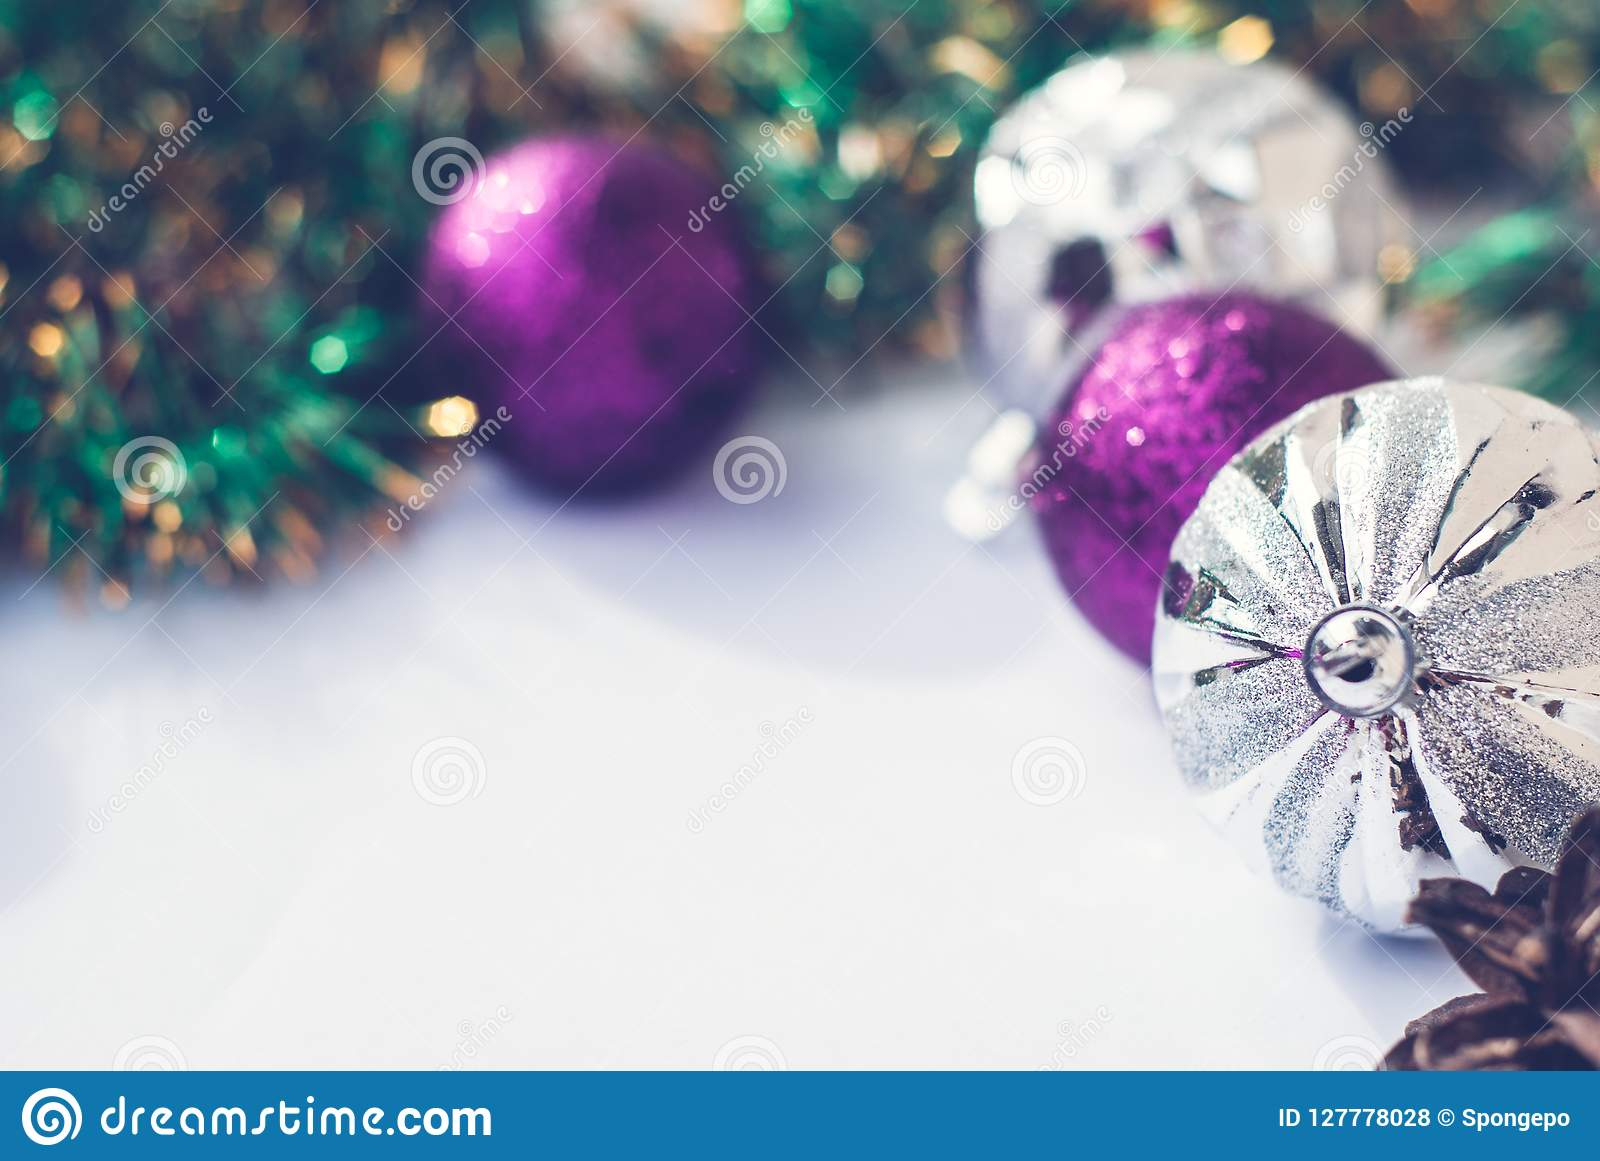 New Year Theme Christmas Tree Purple And Silver Decorations Balls On White Retro Wood Background Stock Photo Image Of Bright Retro 127778028